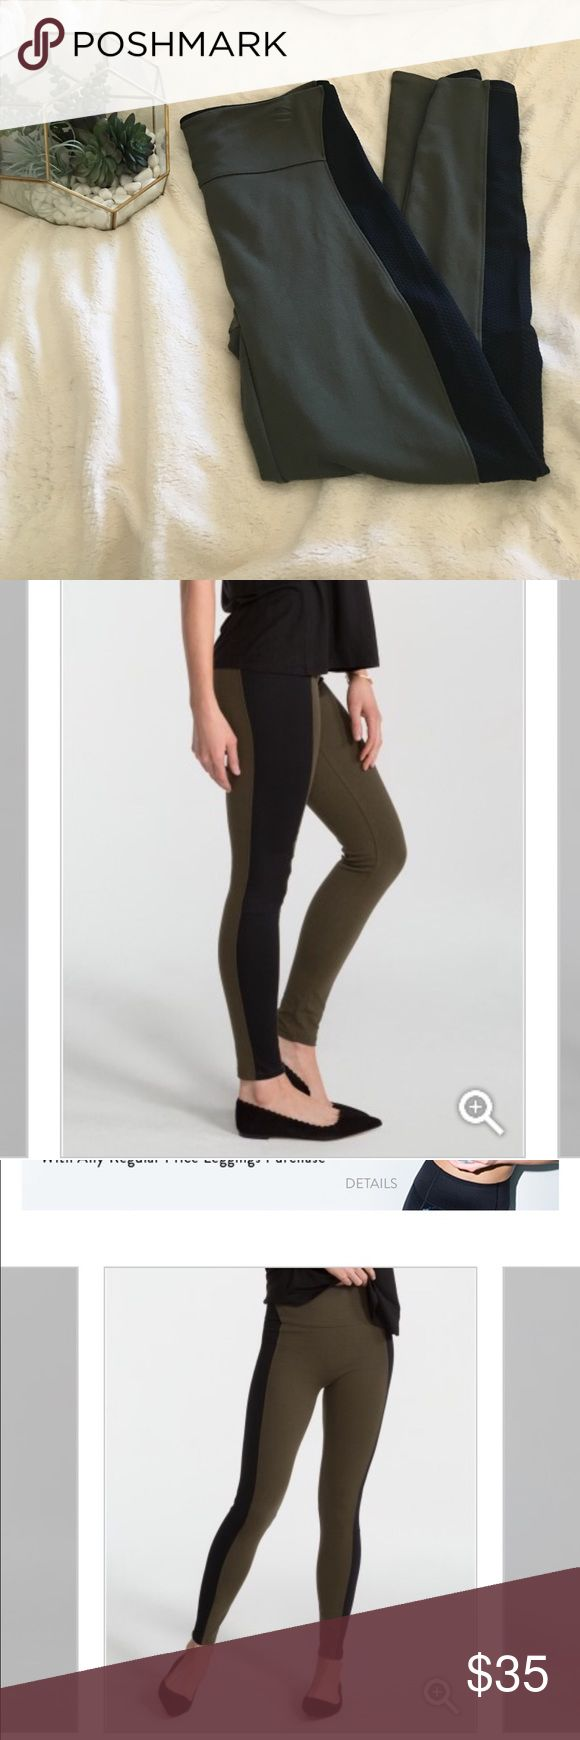 Spanx textured panel leggings Beautiful and versatile textured panel leggings by SPANX. Like new! Holds your belly in and are super flattering. Smoke free home; no rips, no tears and no stains SPANX Pants Leggings